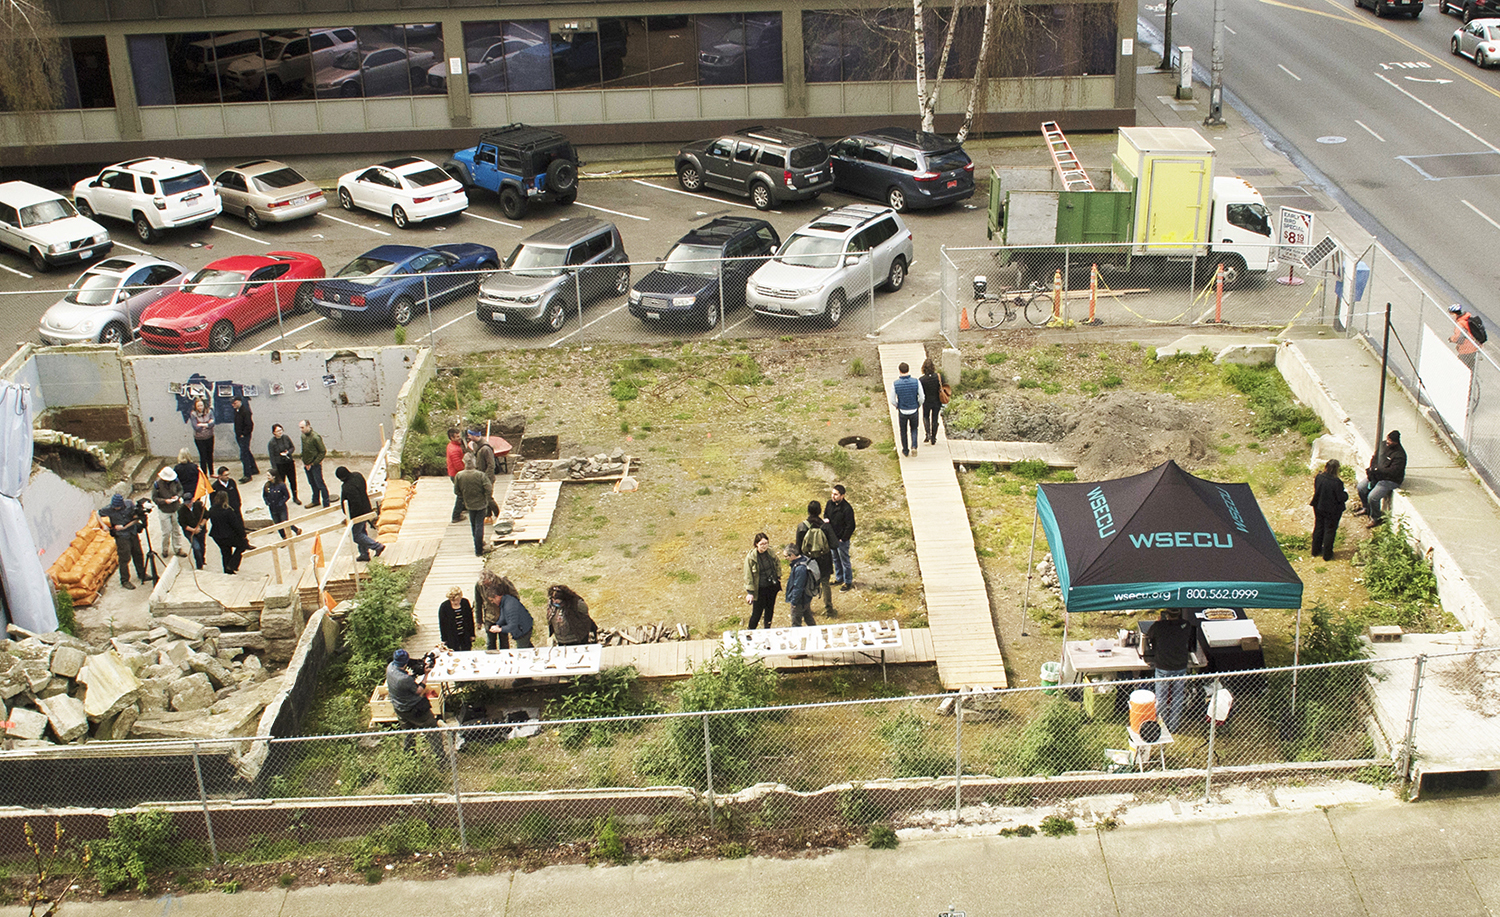 A view from above the site during the open house